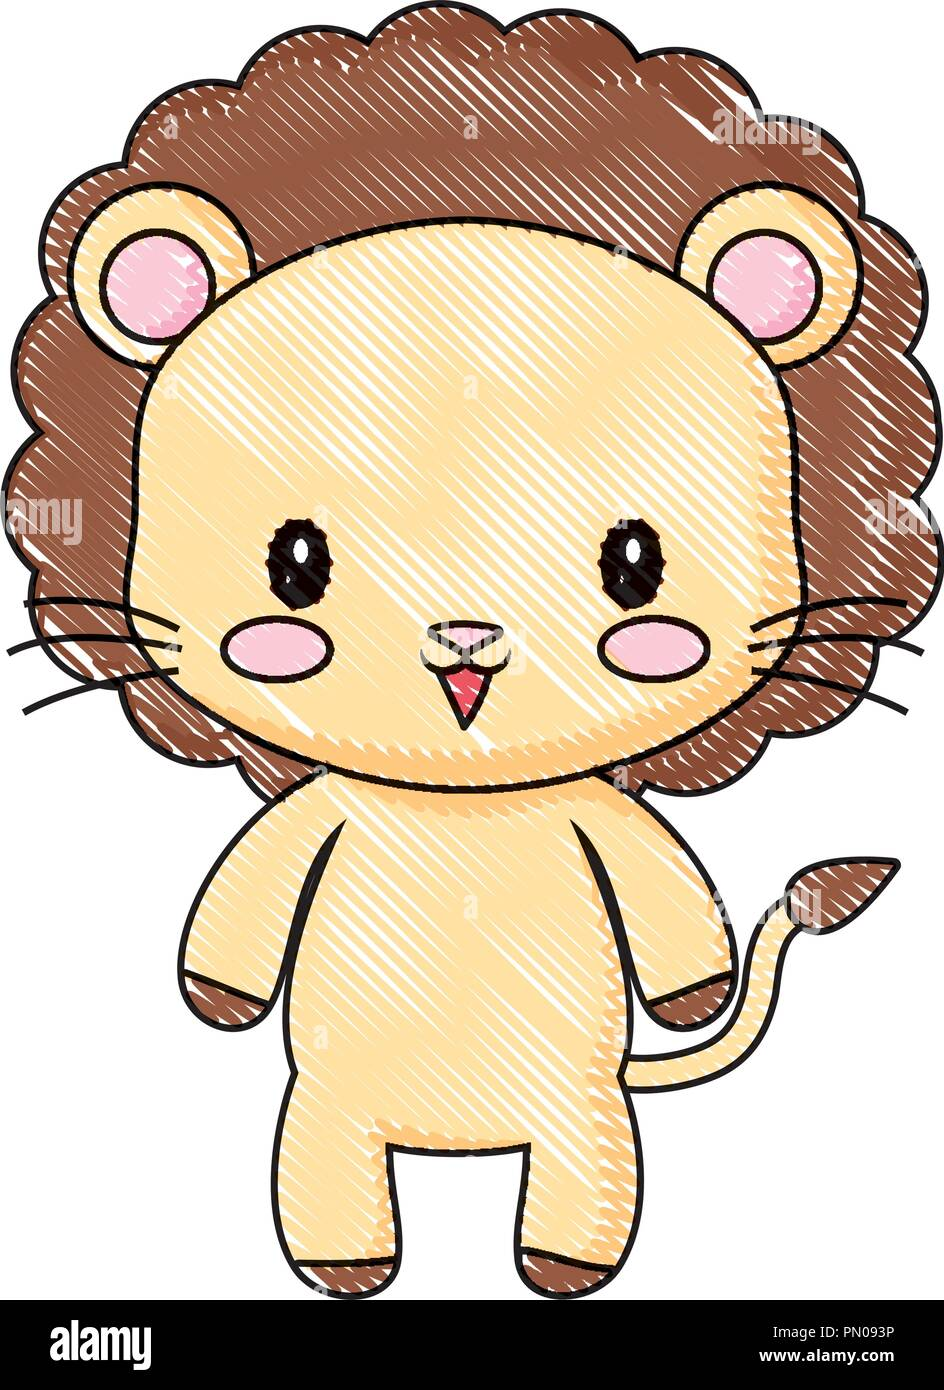 Cute Lion Animal Baby Drawing Cartoon Vector Illustration Stock Vector Image Art Alamy A lion is a complex structure and outline to draw and to make this task easier after downloading and printing, one must carefully cut out the outline of the lion template to use it further for any purpose. https www alamy com cute lion animal baby drawing cartoon vector illustration image219439354 html